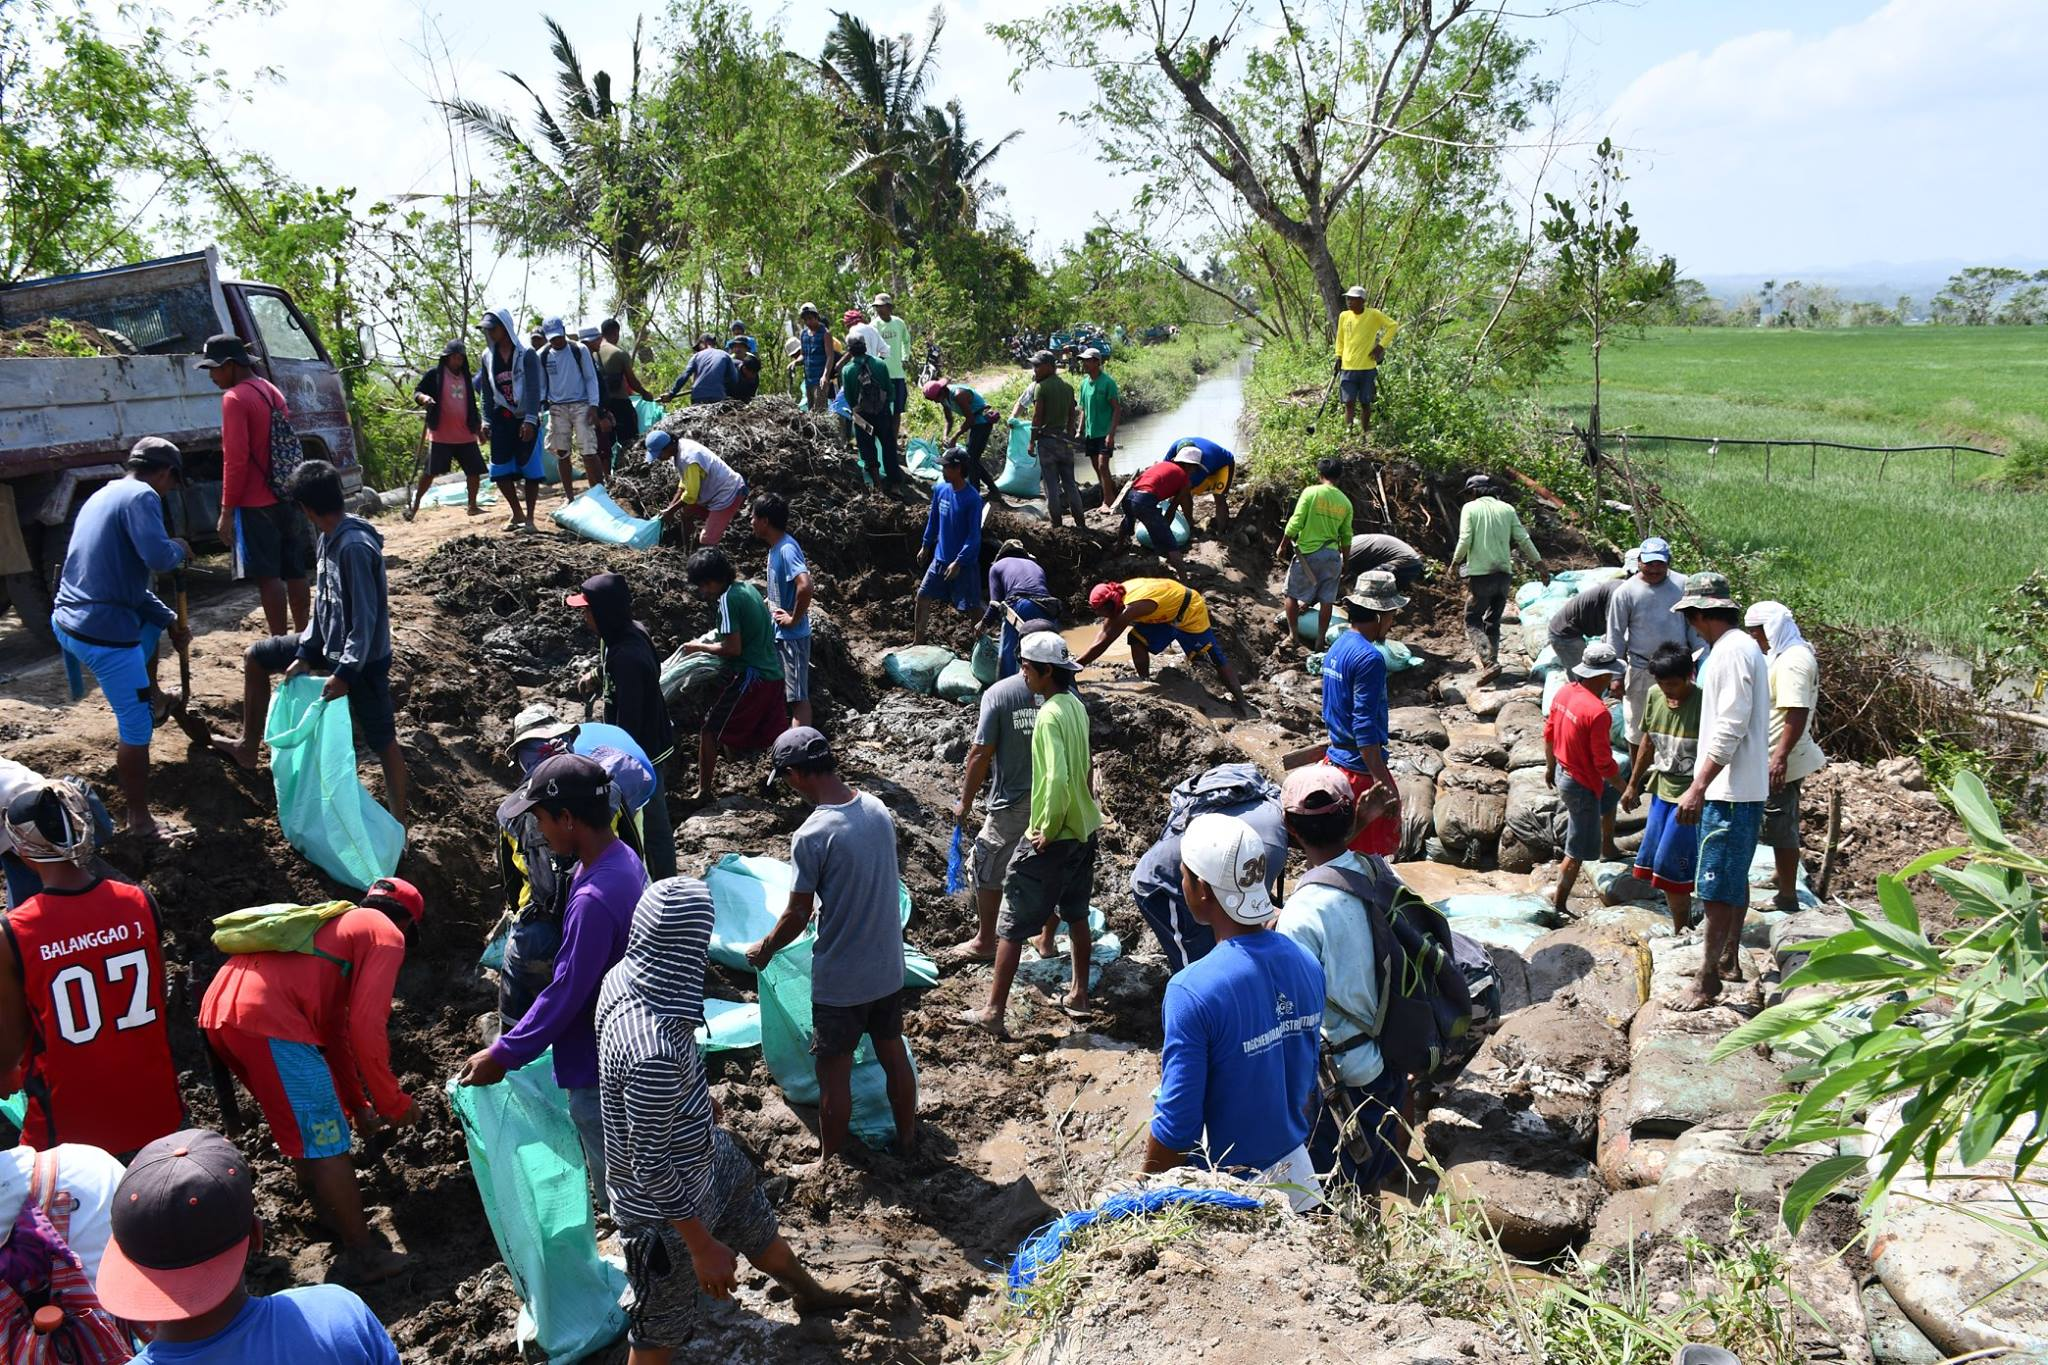 Ipil 1: Matagoan Irrigators' Association of Tabuk, Kalinga together with Kalinga IMO personnel work hand in hand to temporarily restore the washed out irrigation canal of the Upper Chico River Irrigation System (UCRIS). Photo by Agnep Afidchao